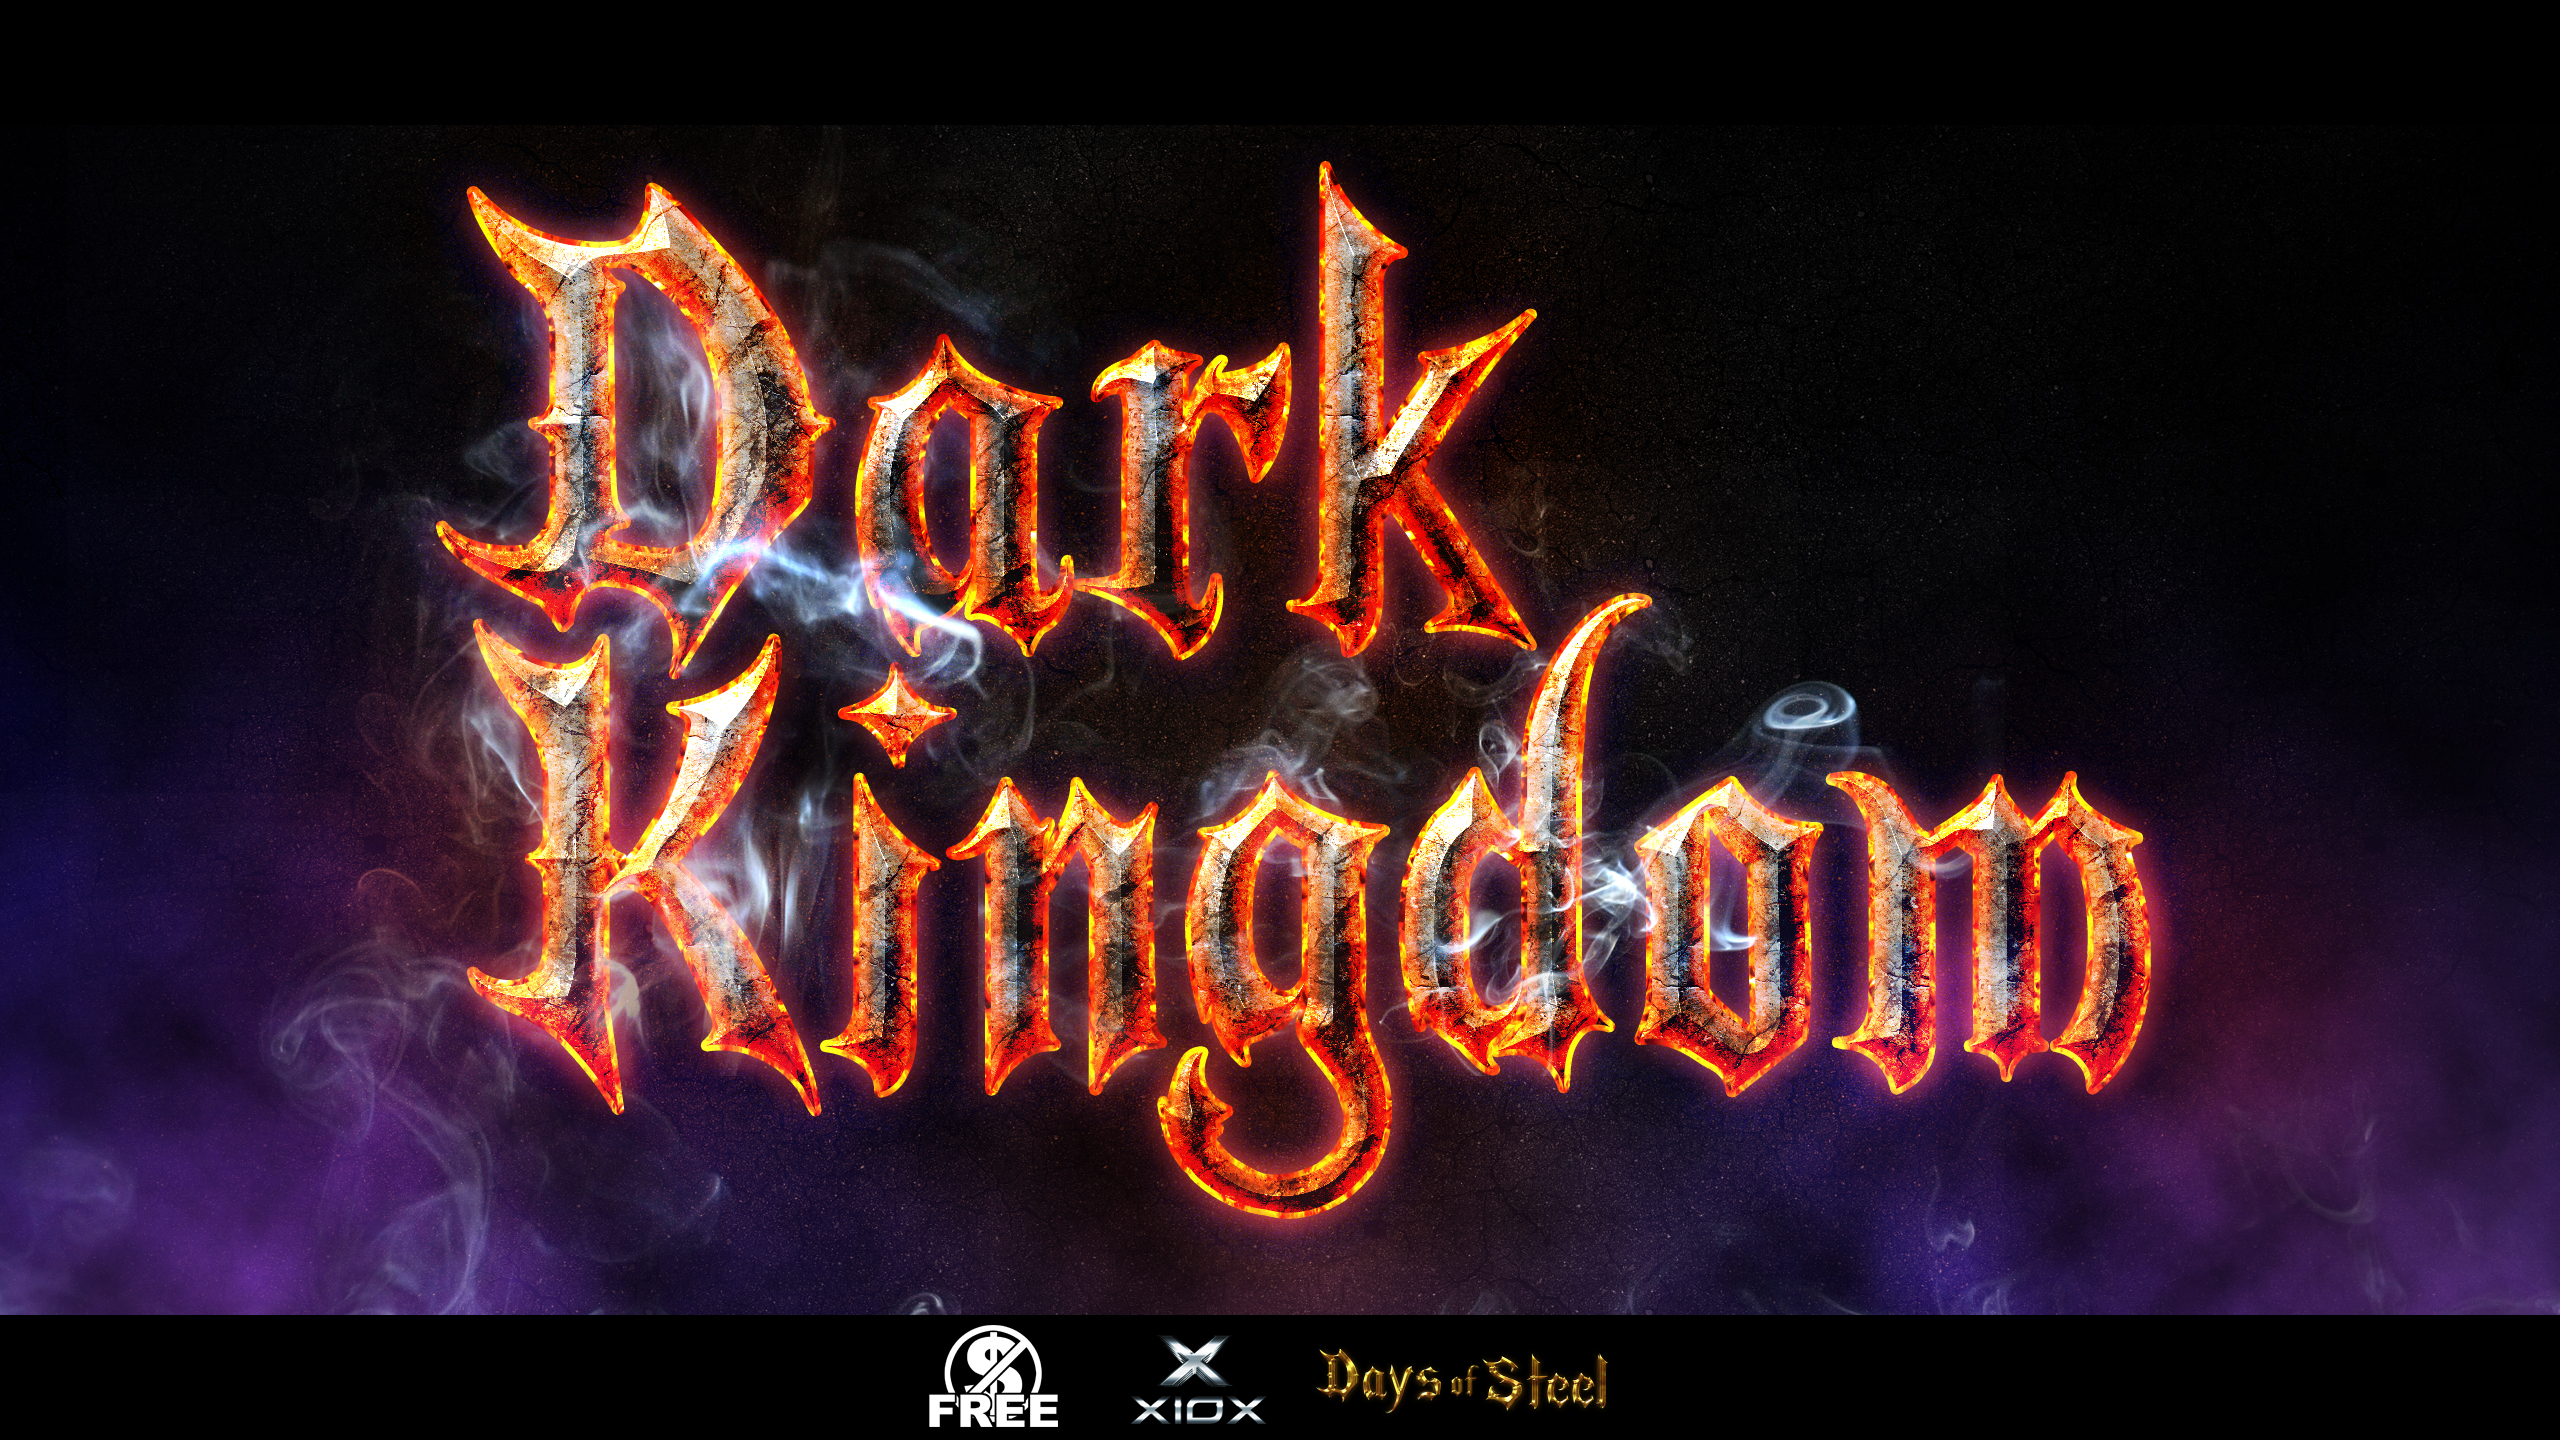 Dark Kingdom Free Fantasy Photoshop Text Effect